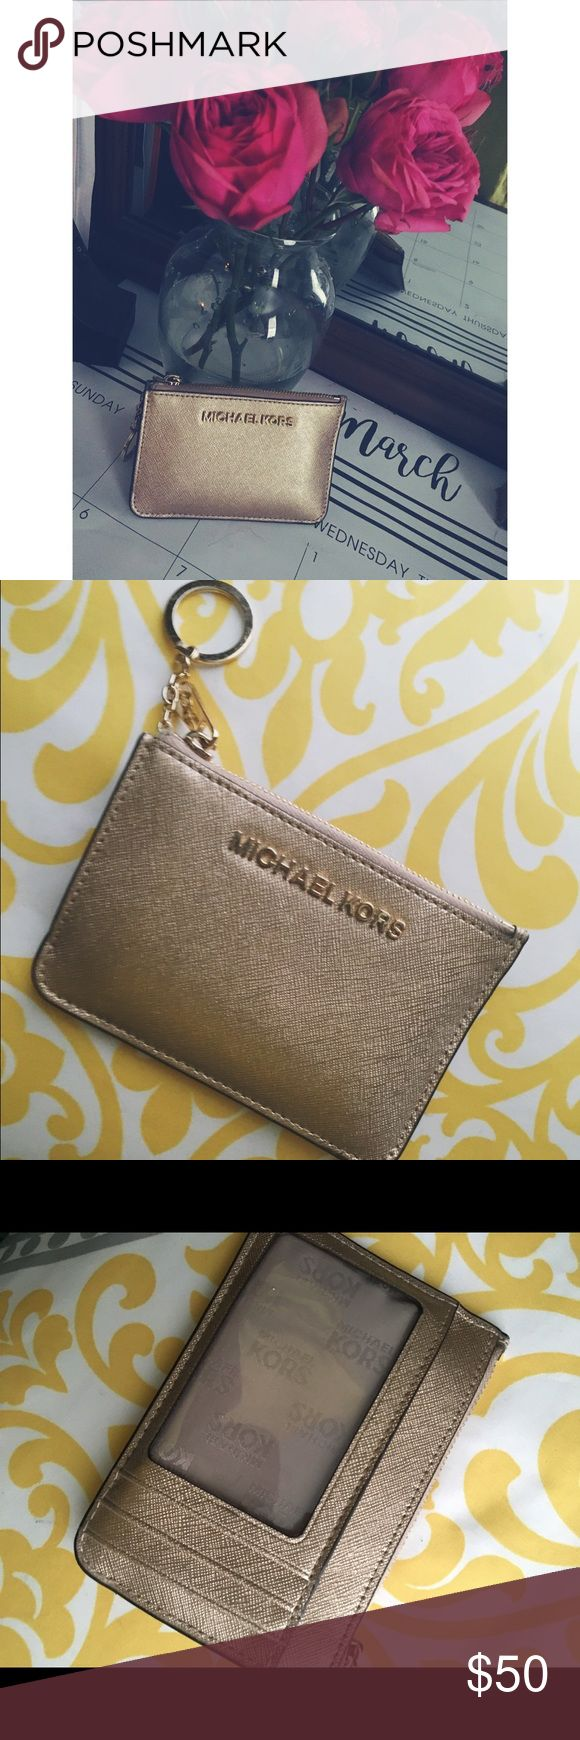 Michael Kors Coin Purse Small wallet with key ring. ID and 3 card slot on the front with a bill holder and 2 compartment zipper pouch. Pale gold with gold hardware. Very lightly used, minimal scratches on the metal || accepting $40 through  venⓂ️o || KORS Michael Kors Accessories Key & Card Holders